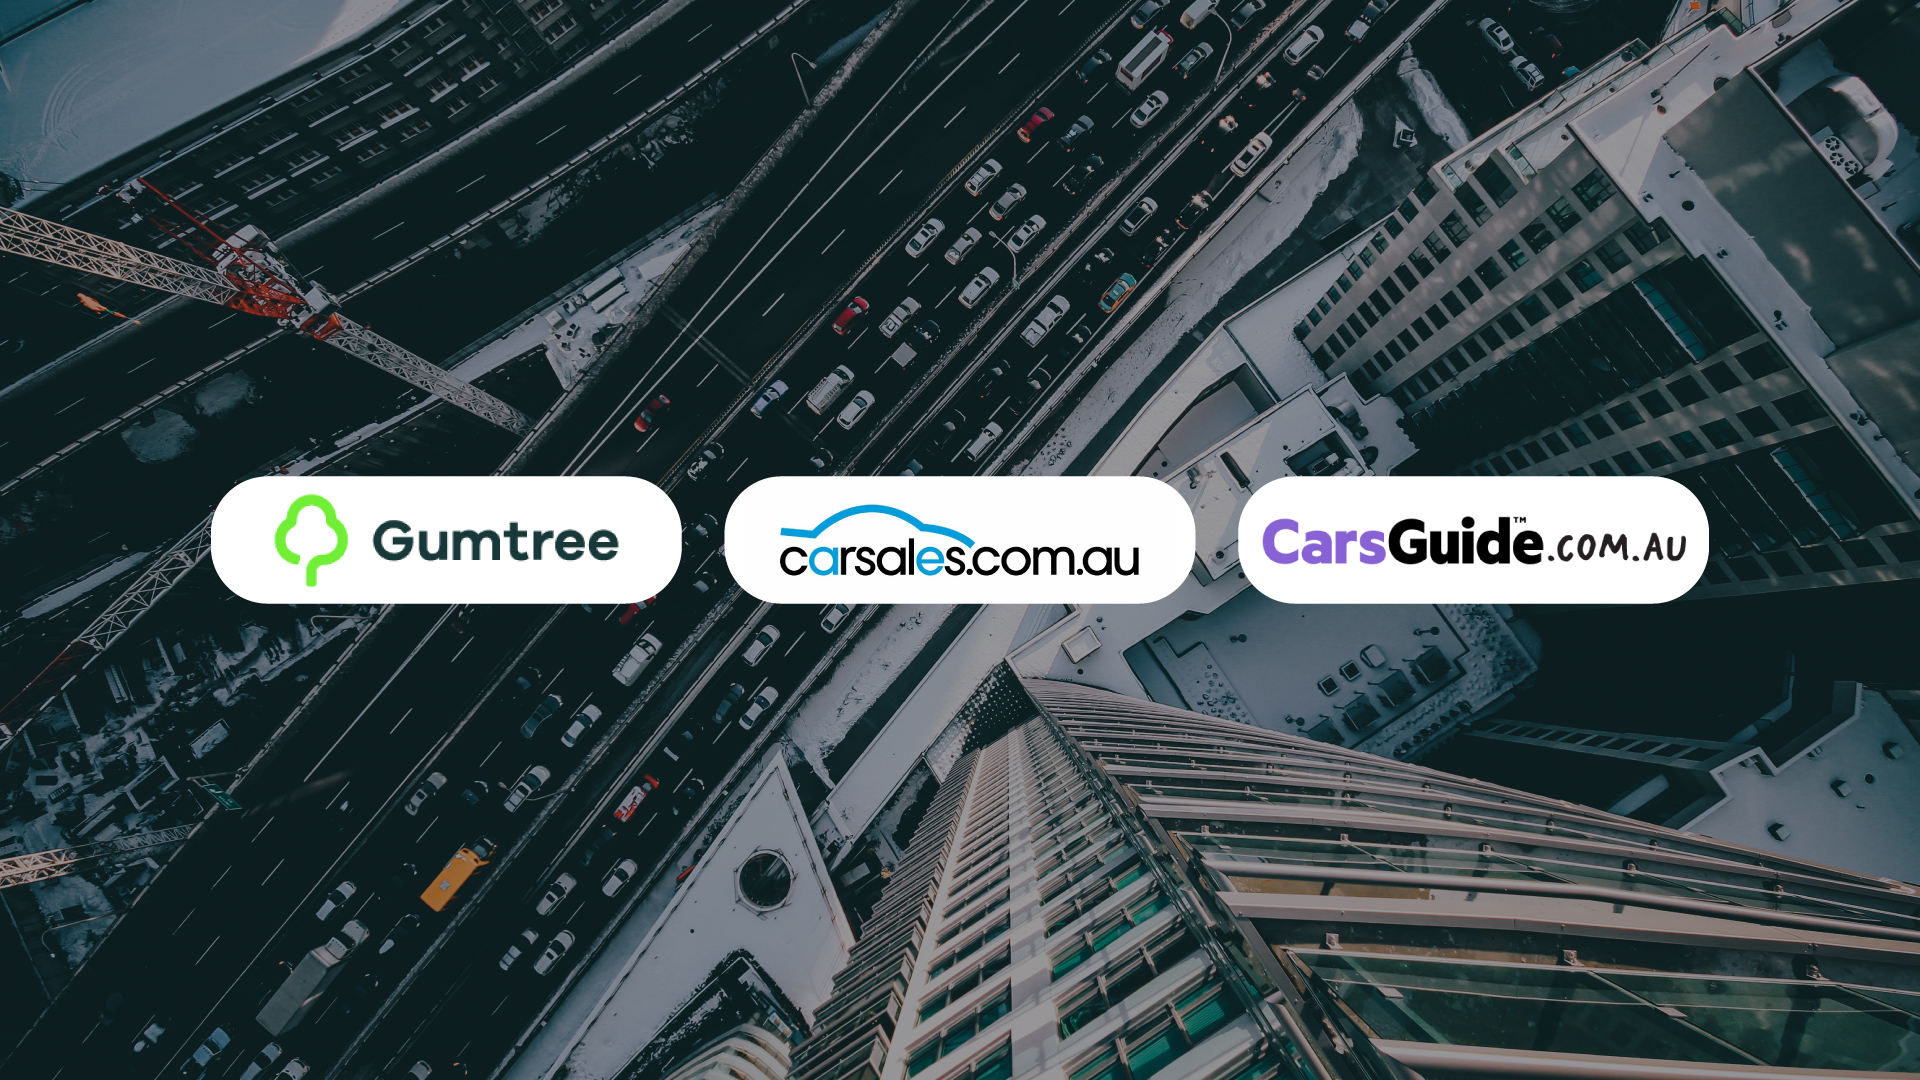 Carsales logo - Gumtree logo - Carsguide logo - which brand to use to sell your car